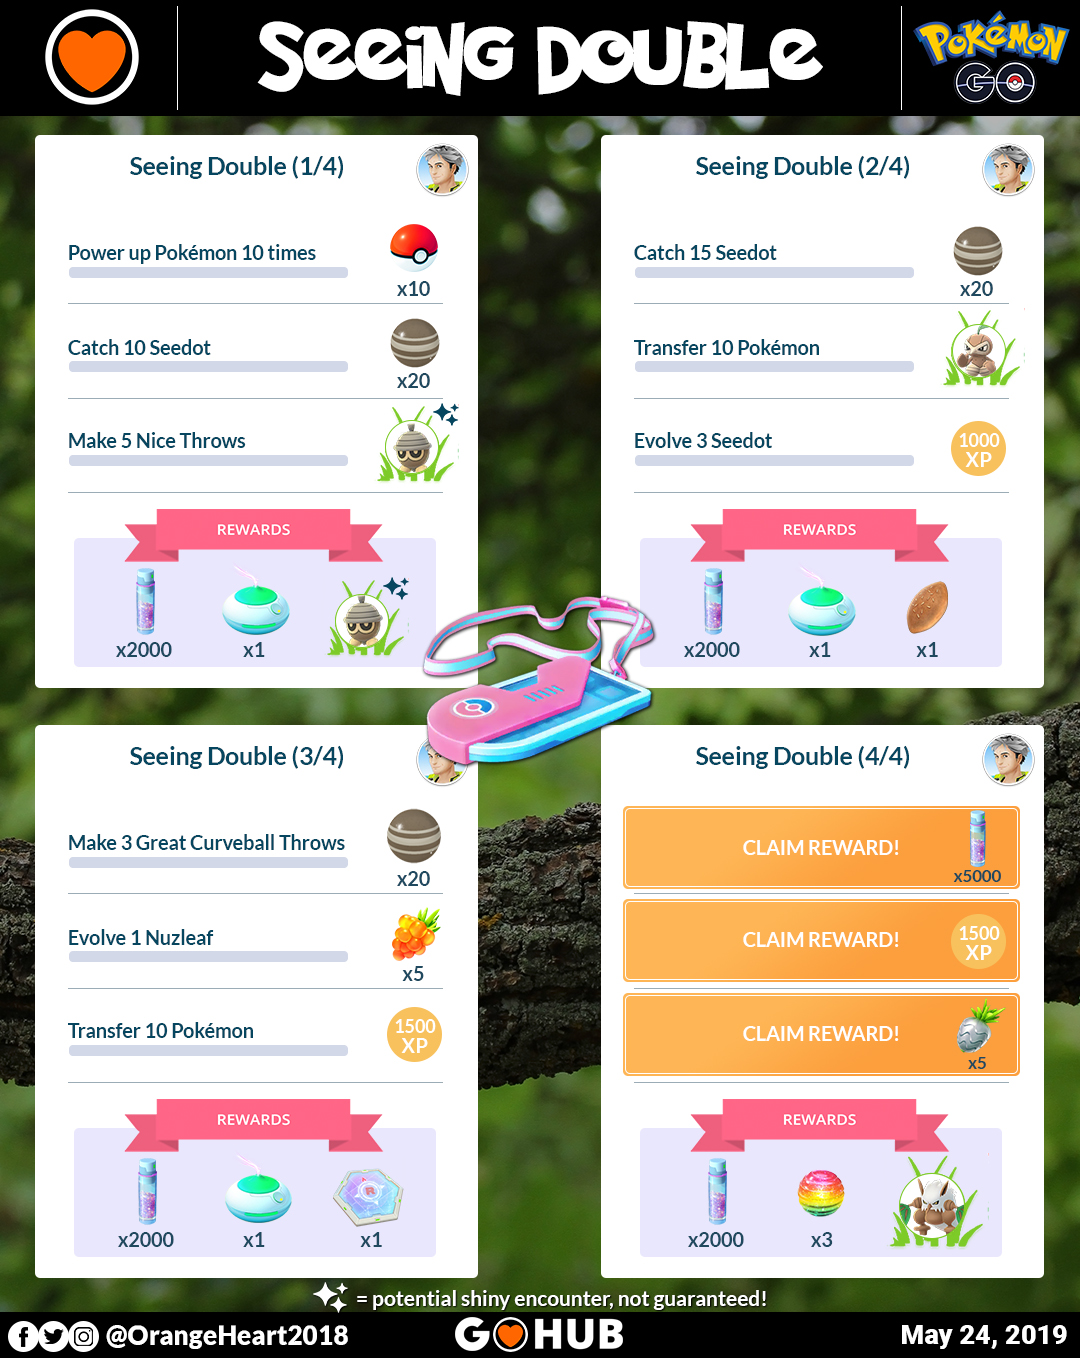 Seeing Double Special Research Steps and Rewards